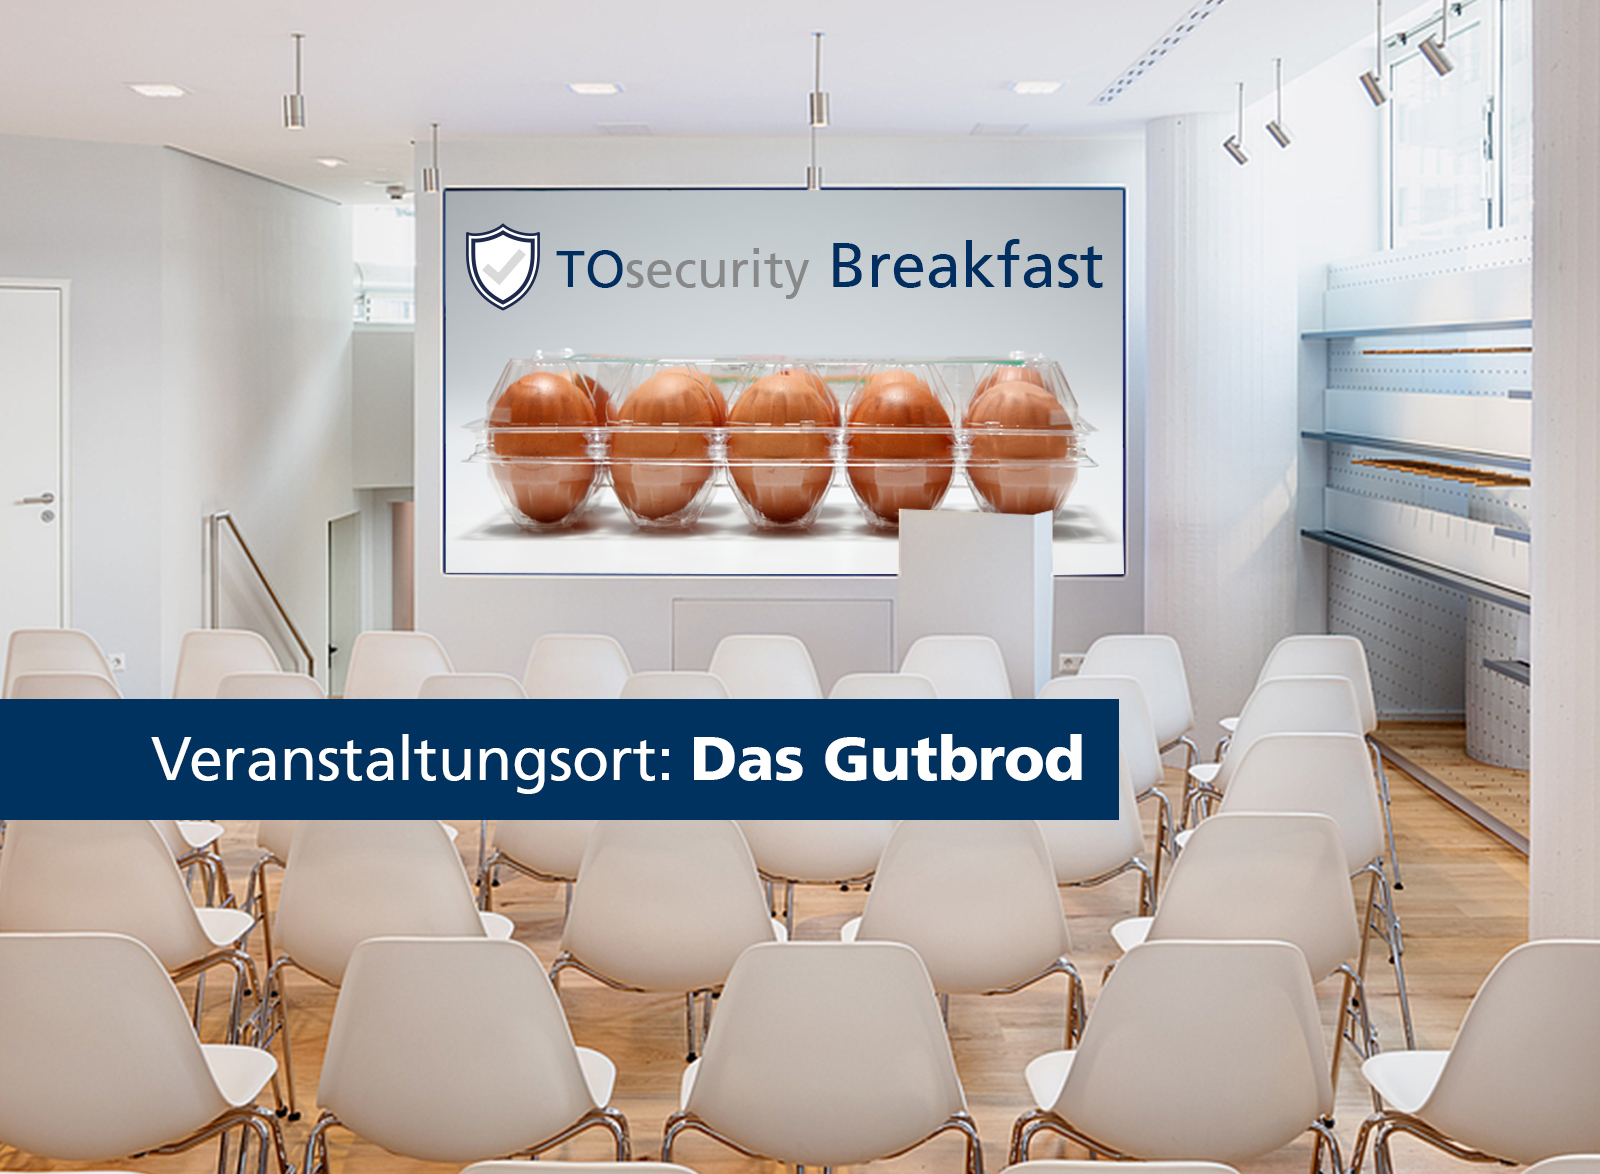 TOsecurity Breakfast